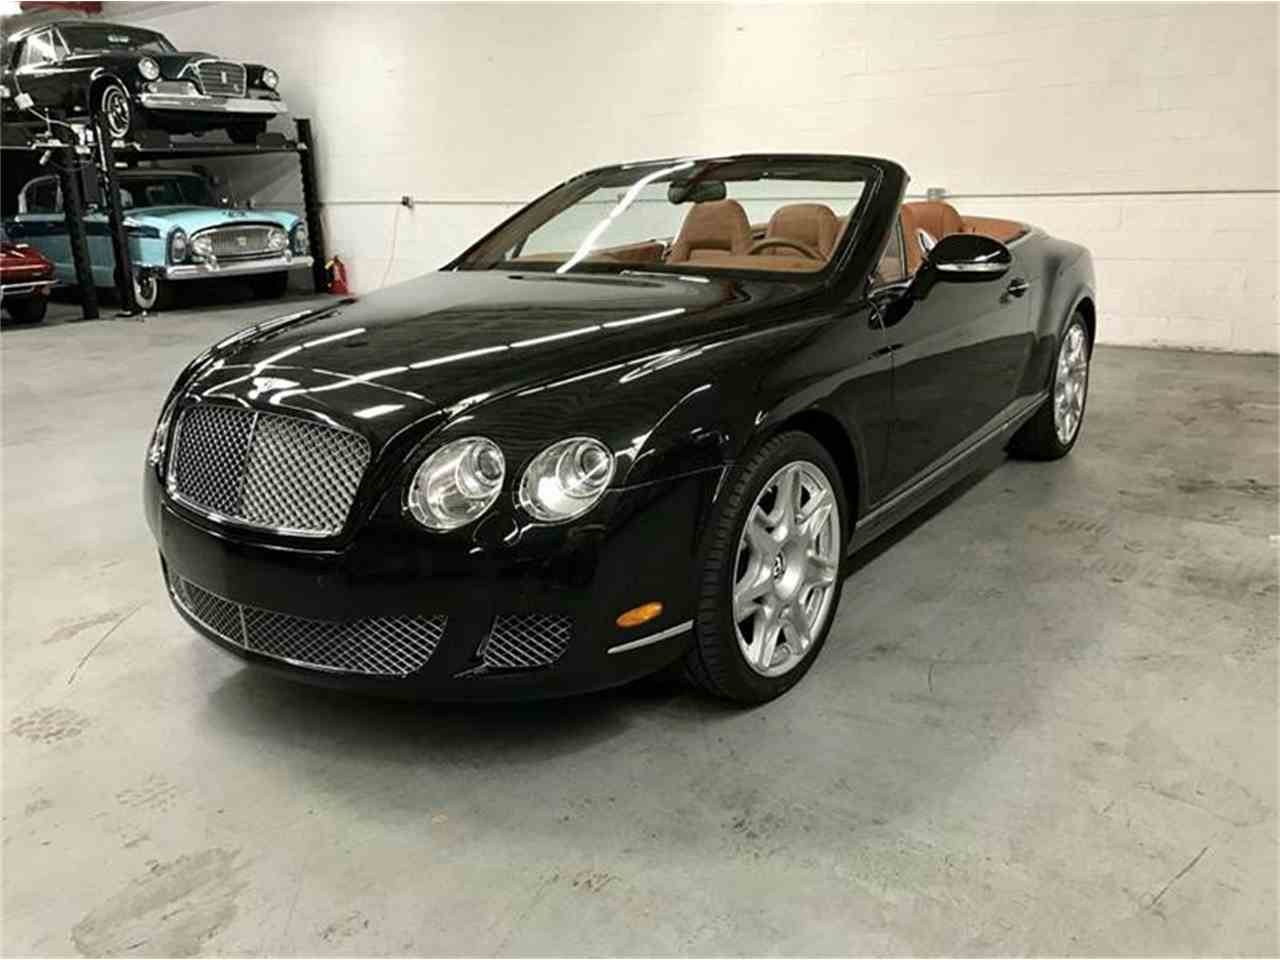 gtc dark used convertibles essex img continental in speed sapphire for bentley sale